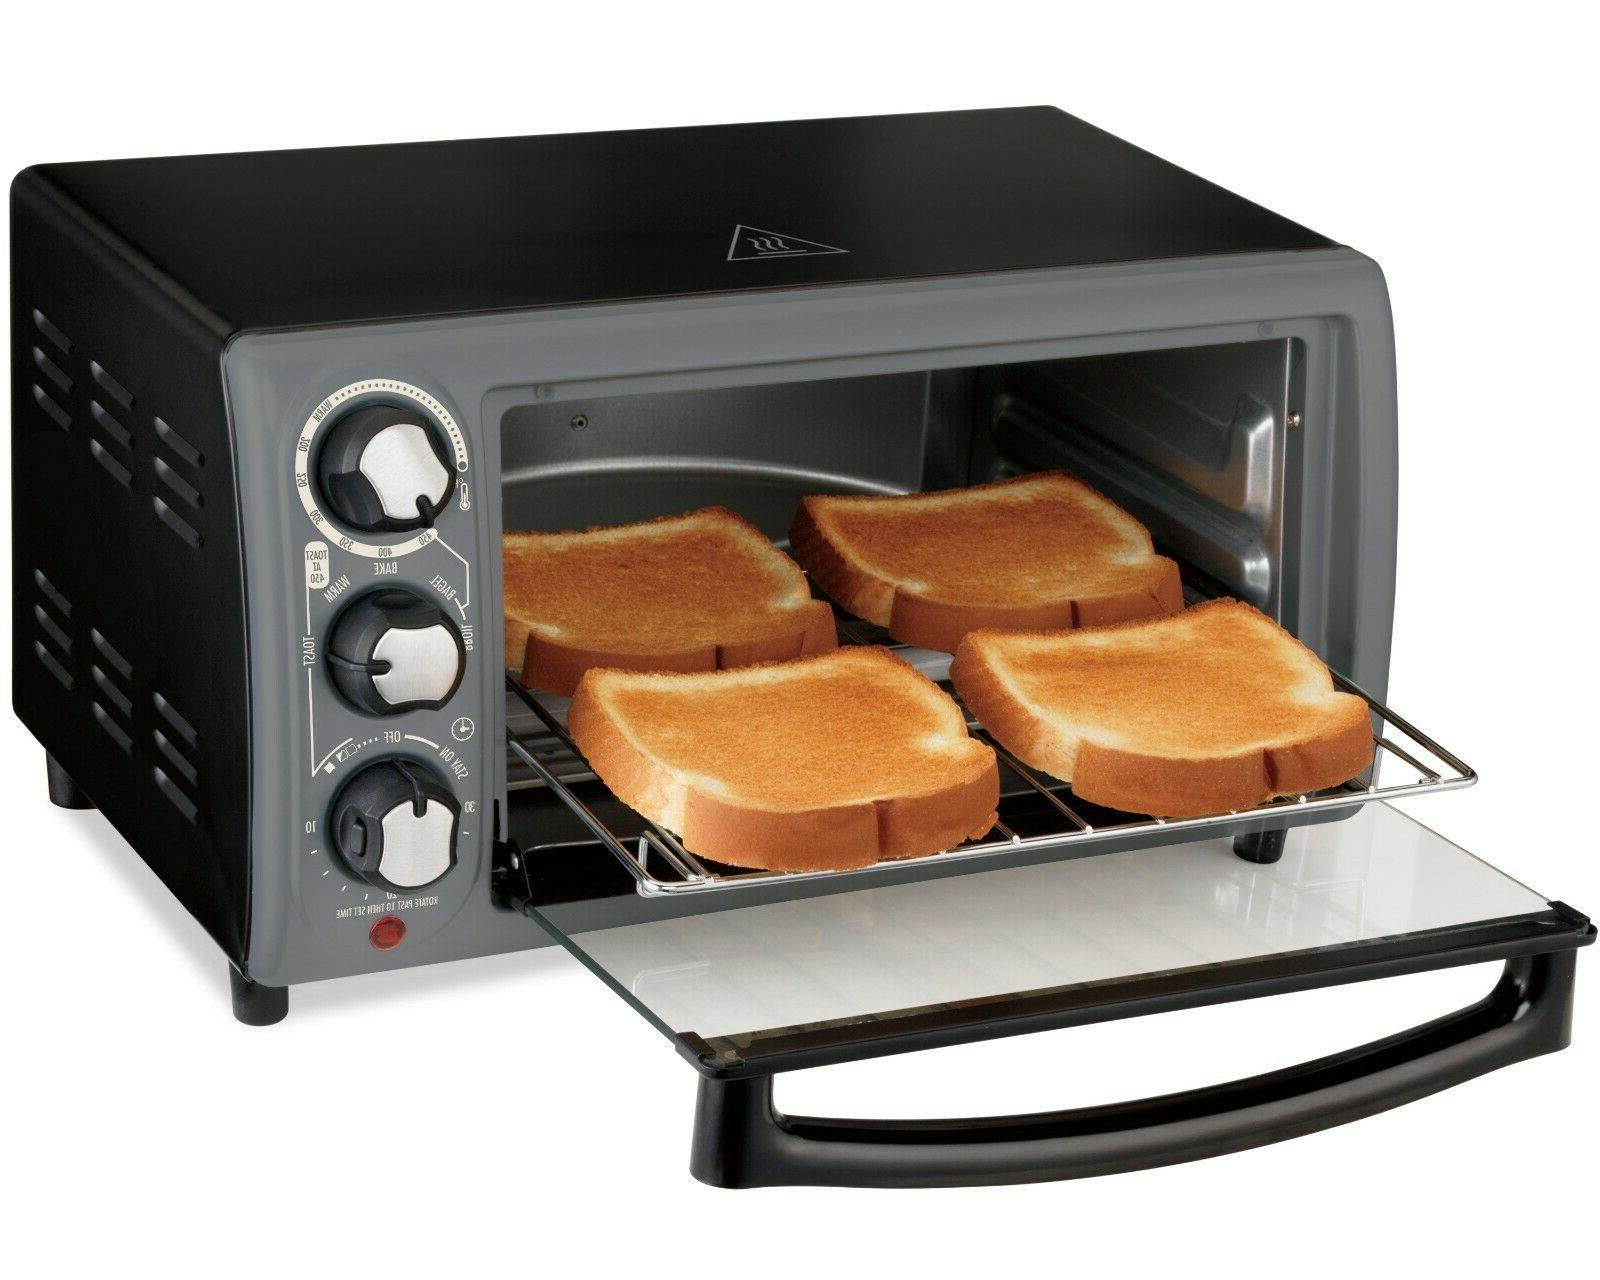 Toaster Prime RV Convection Microwave Countertop